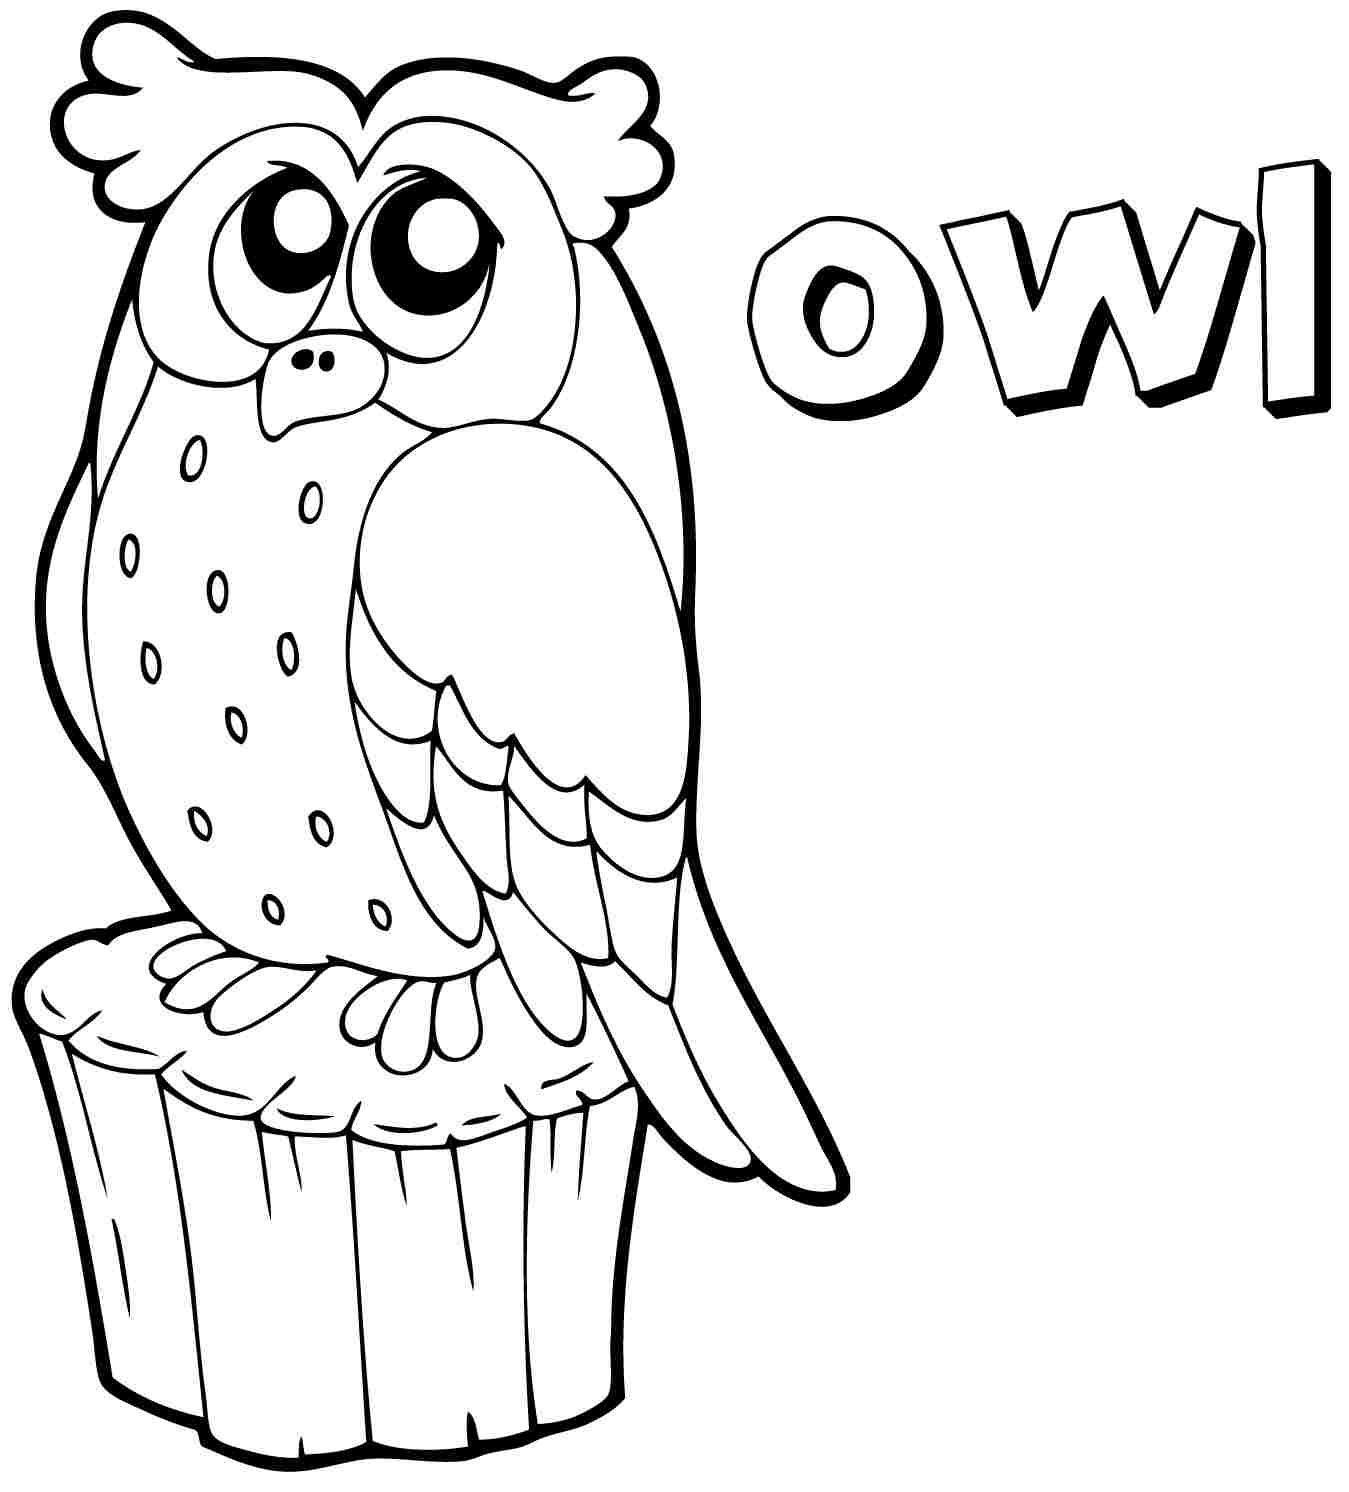 Cute Owl Coloring Pages | Color Periods | Free Coloring Pages ...